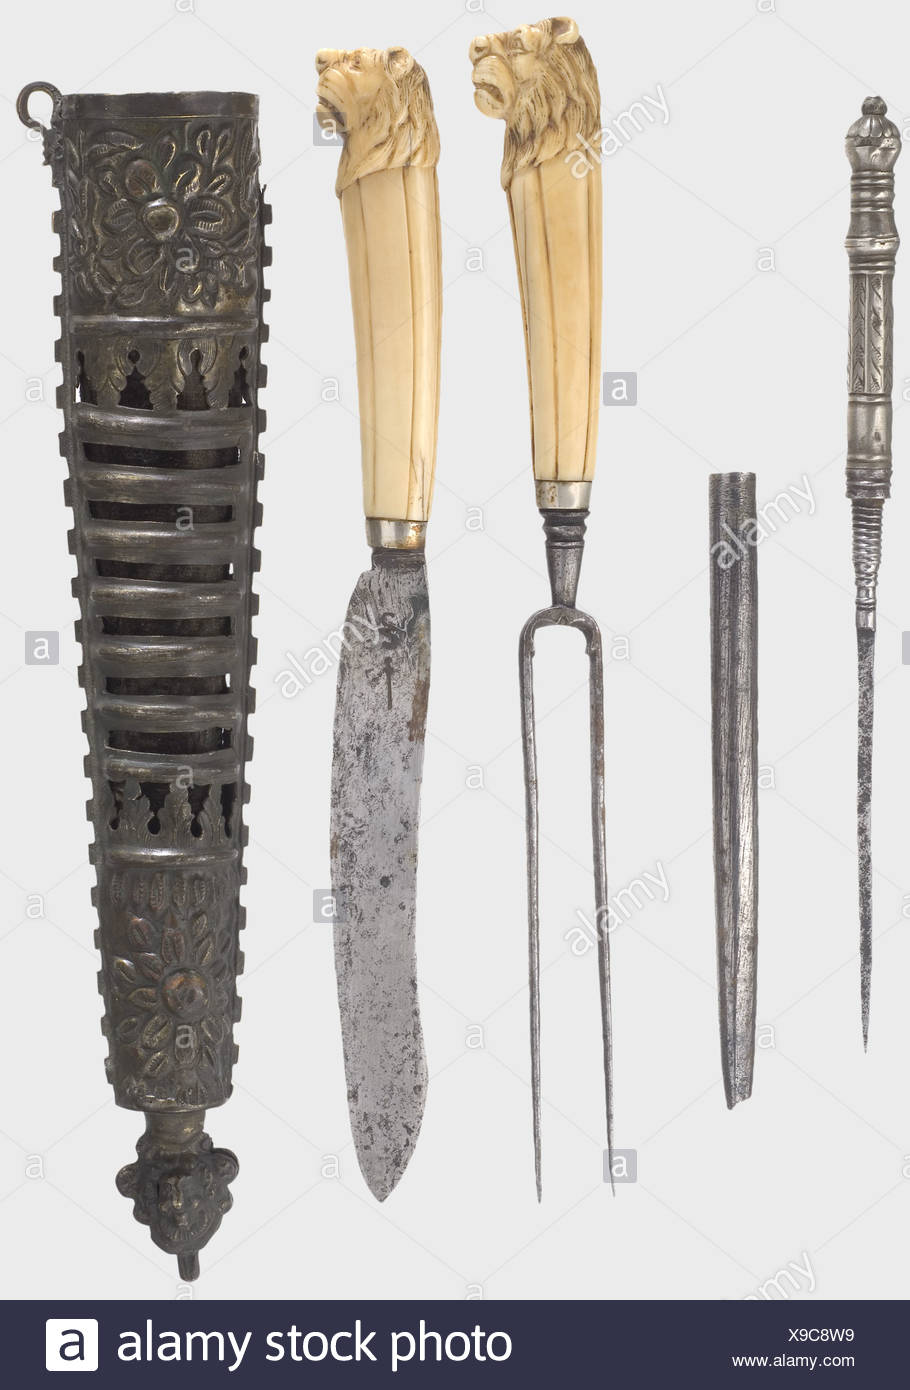 A set of German hunting cutlery, 18th century. Matching knife and fork with ivory handles, the pommel of each carved as a lion head. Non-matching sharpening steel with a nickel-silver handle which unscrews and an awl inside. Openwork scabbard embossed with floral designs and a three-piece wooden insert. Length 32 cm. historic, historical, 18th century, dagger, daggers, thrusting, thrustings, baton, weapon, arms, weapons, arms, fighting device, object, objects, stills, clipping, cut out, cut-out, cut-outs, Additional-Rights-Clearances-NA - Stock Image